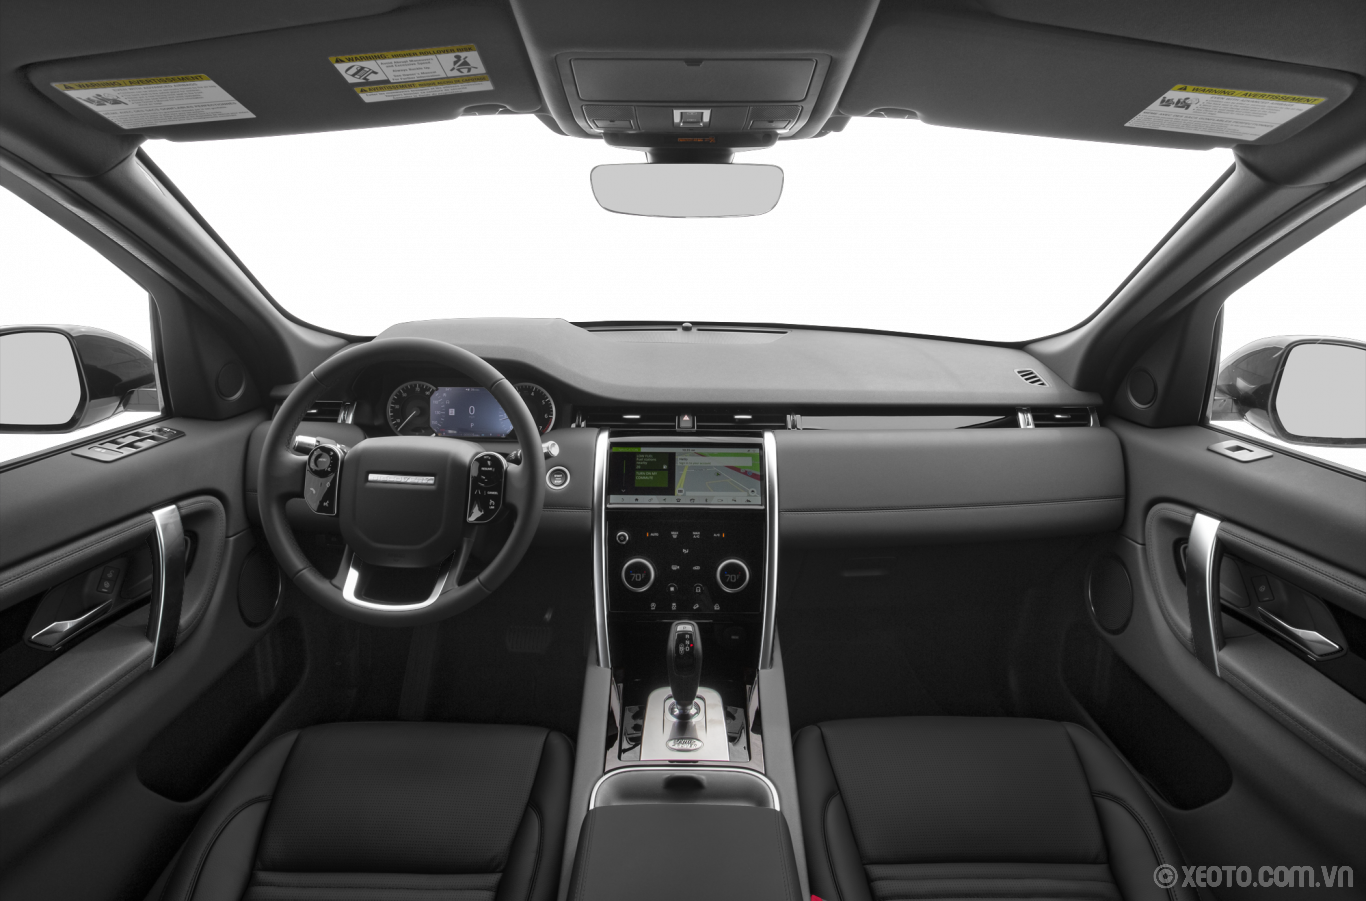 Land Rover Discovery Sport 2020 hình ảnh nội thất Front seat (full)